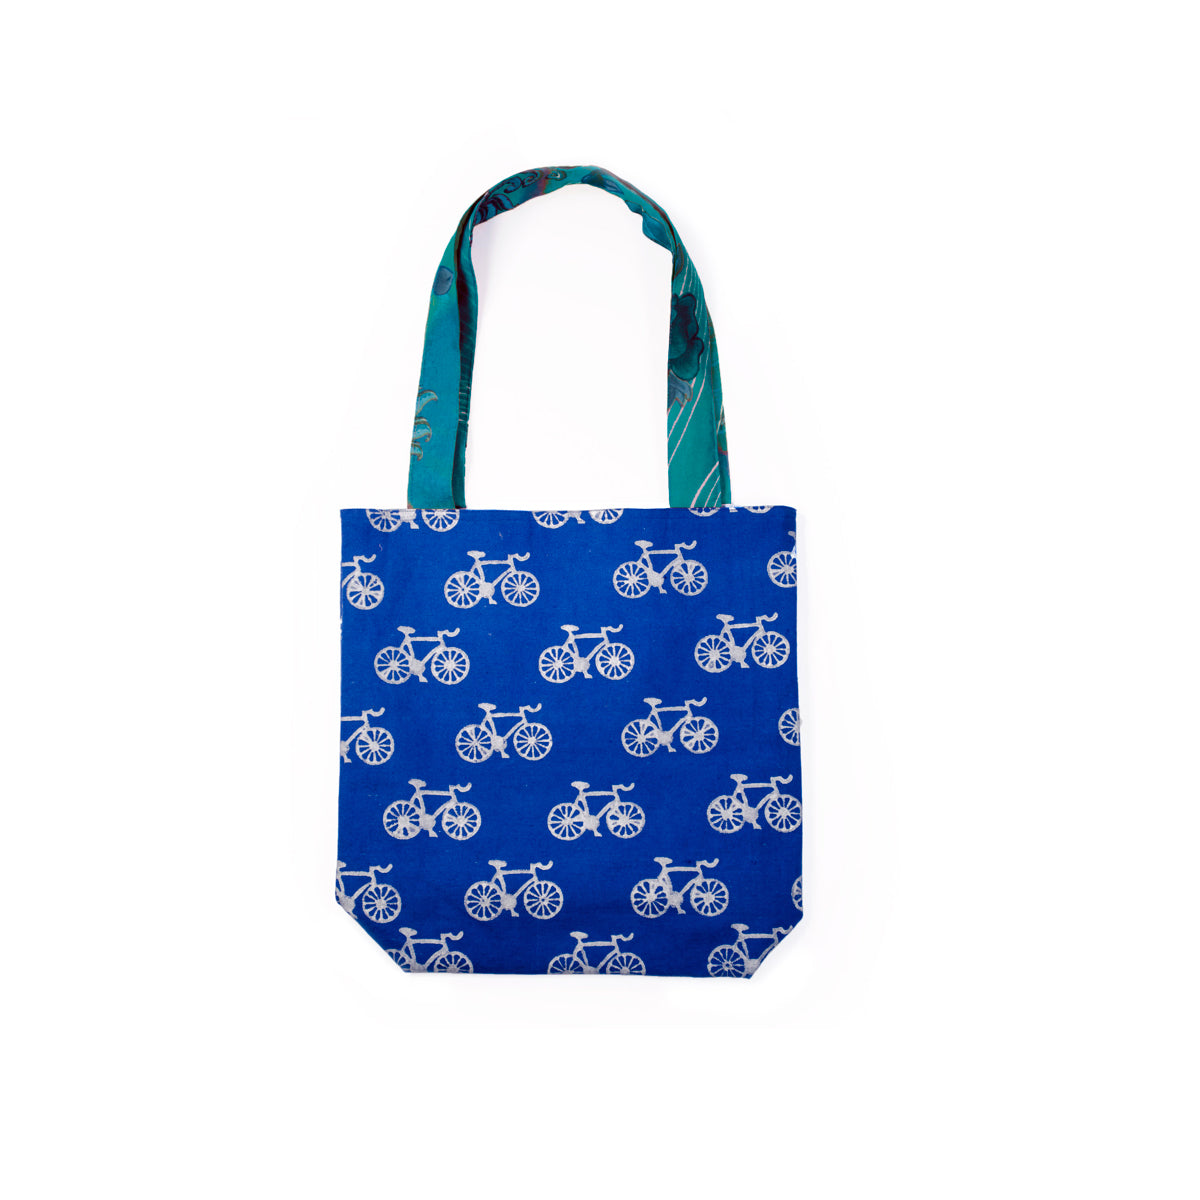 Metallic Bicycle Tote - Cobalt Blue